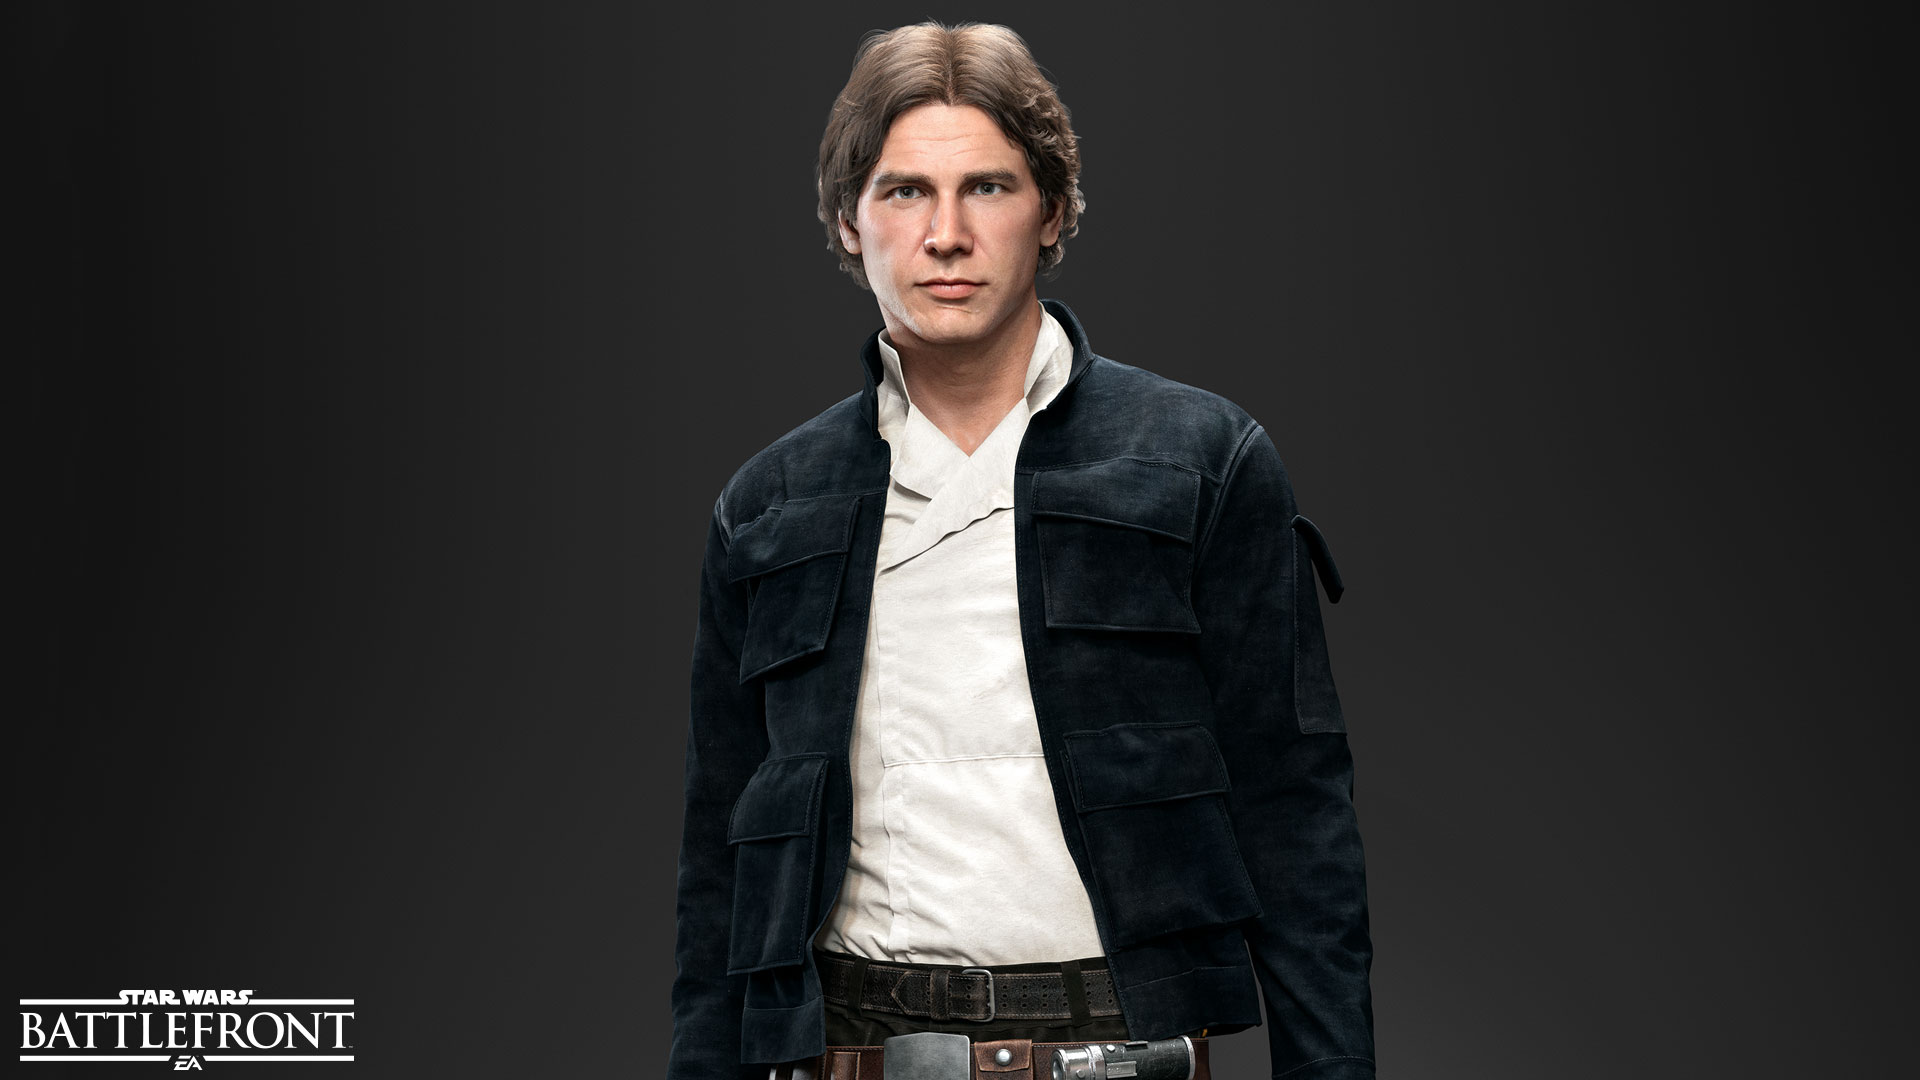 There's a Han Solo Fridge Bundled With Battlefront, but Good Luck Finding It